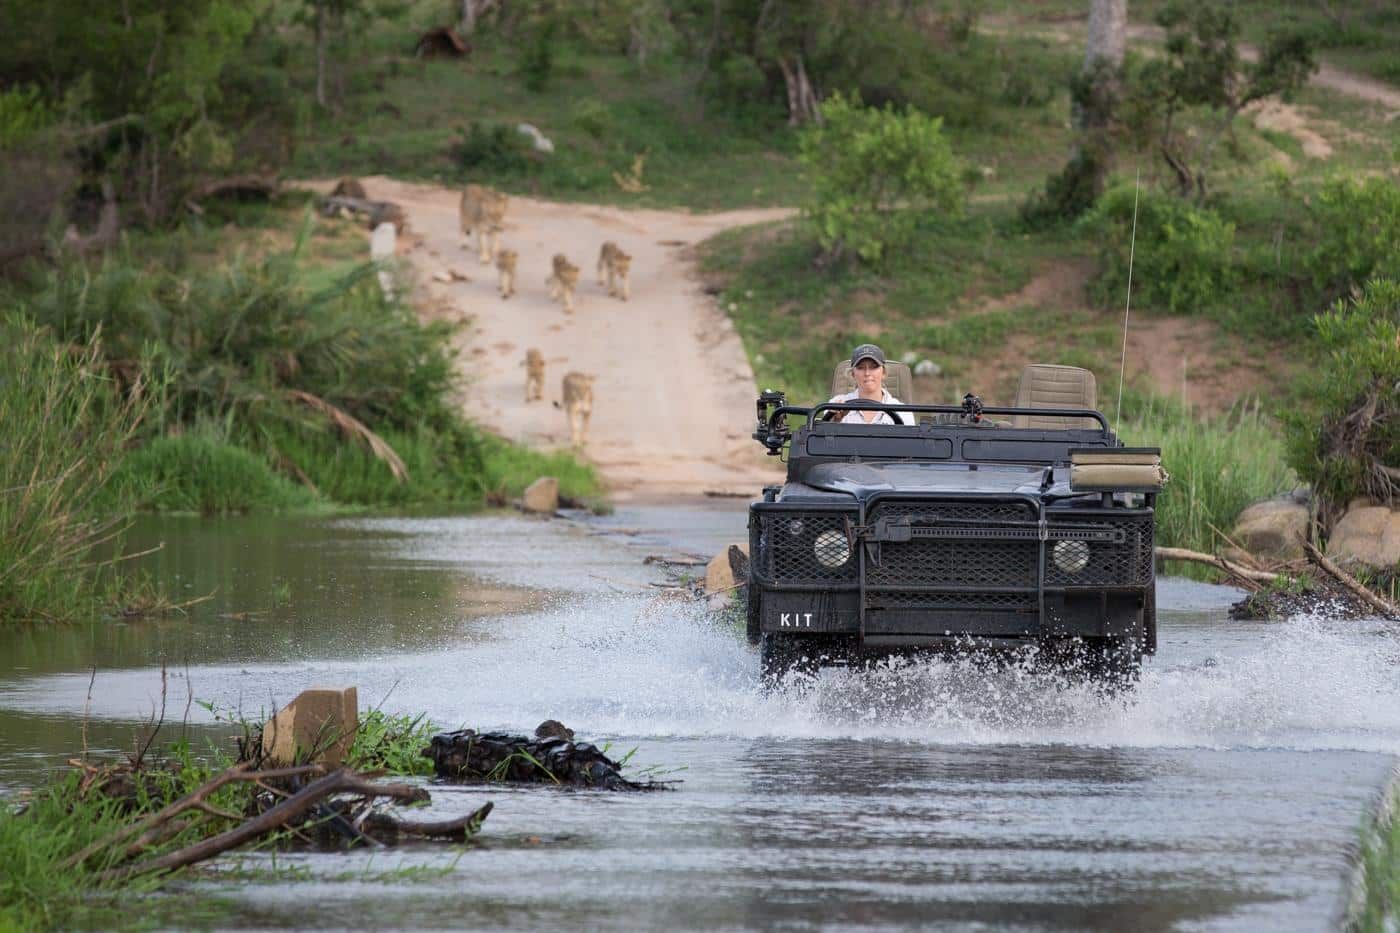 River crossing with Londolozi lions